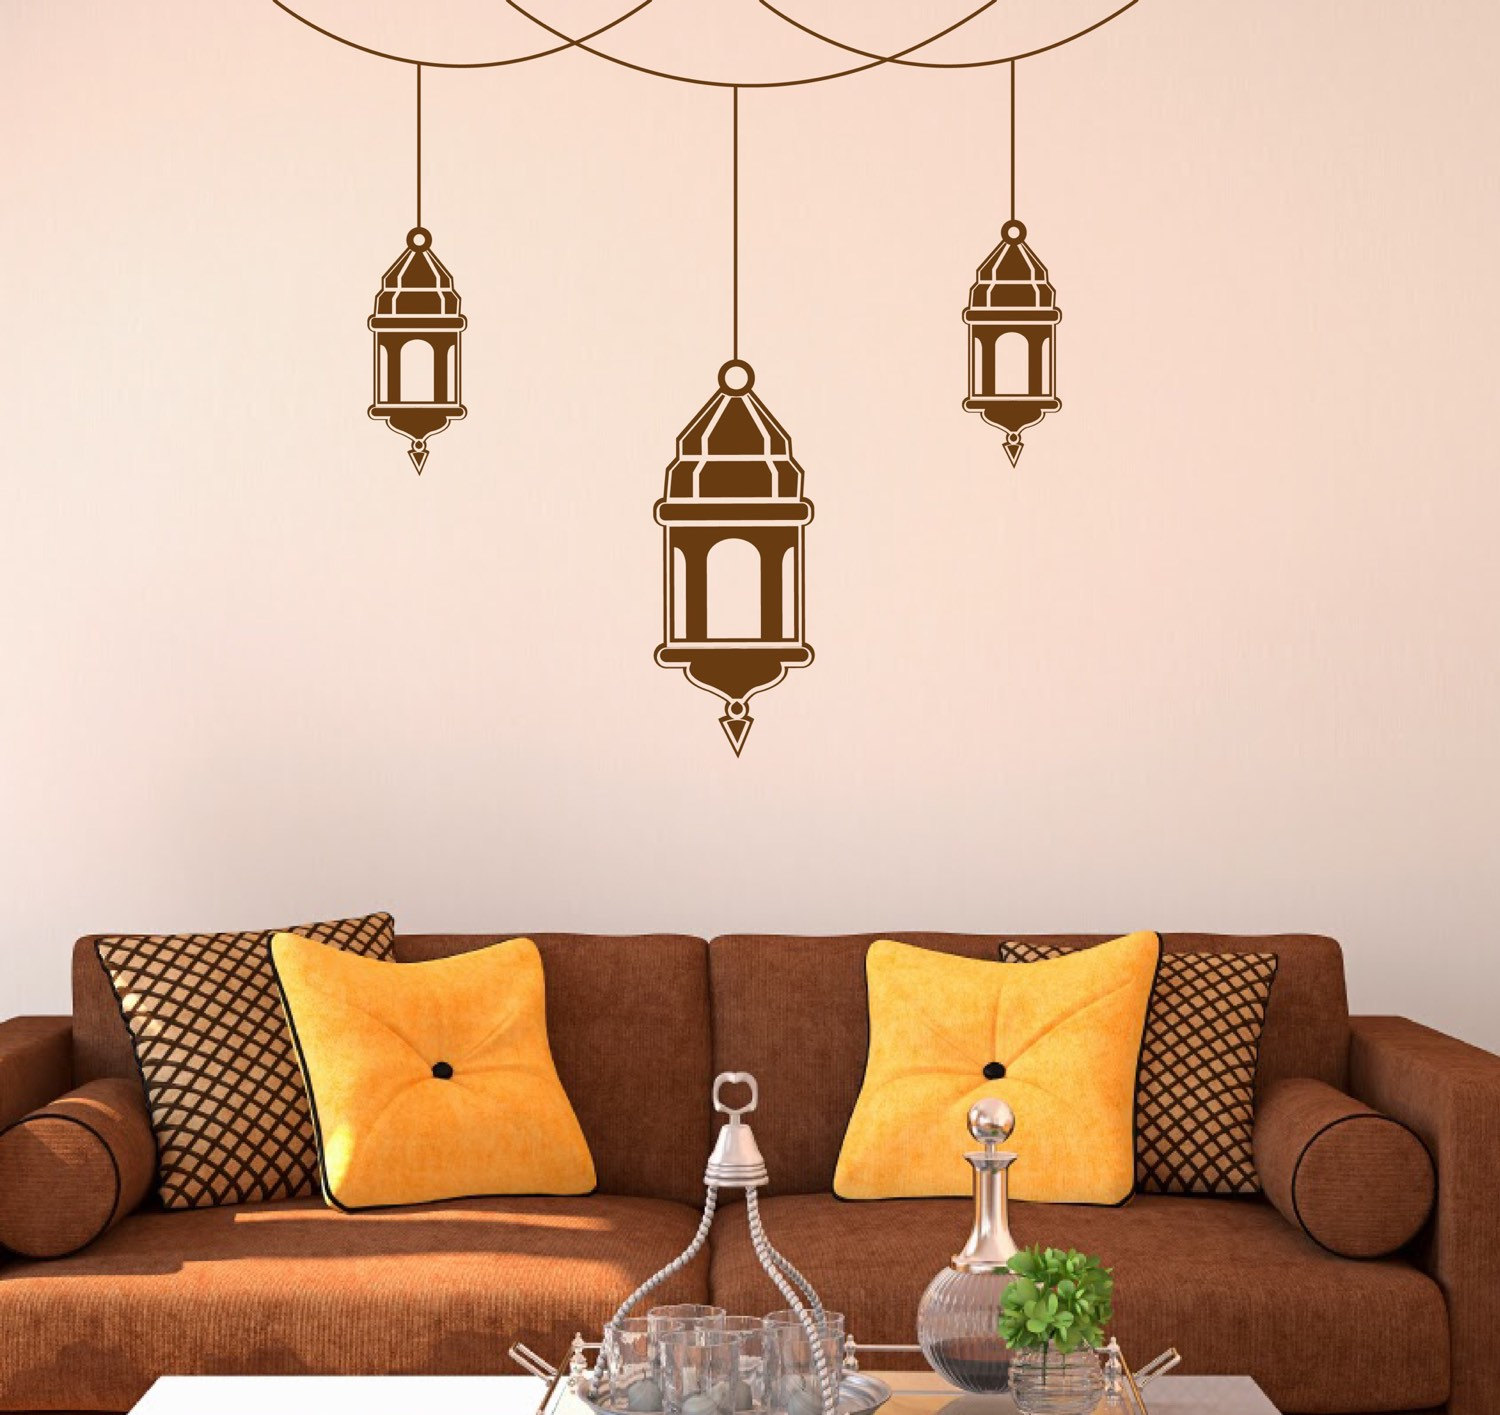 Moroccan Hanging Lanterns Wall Decals ...